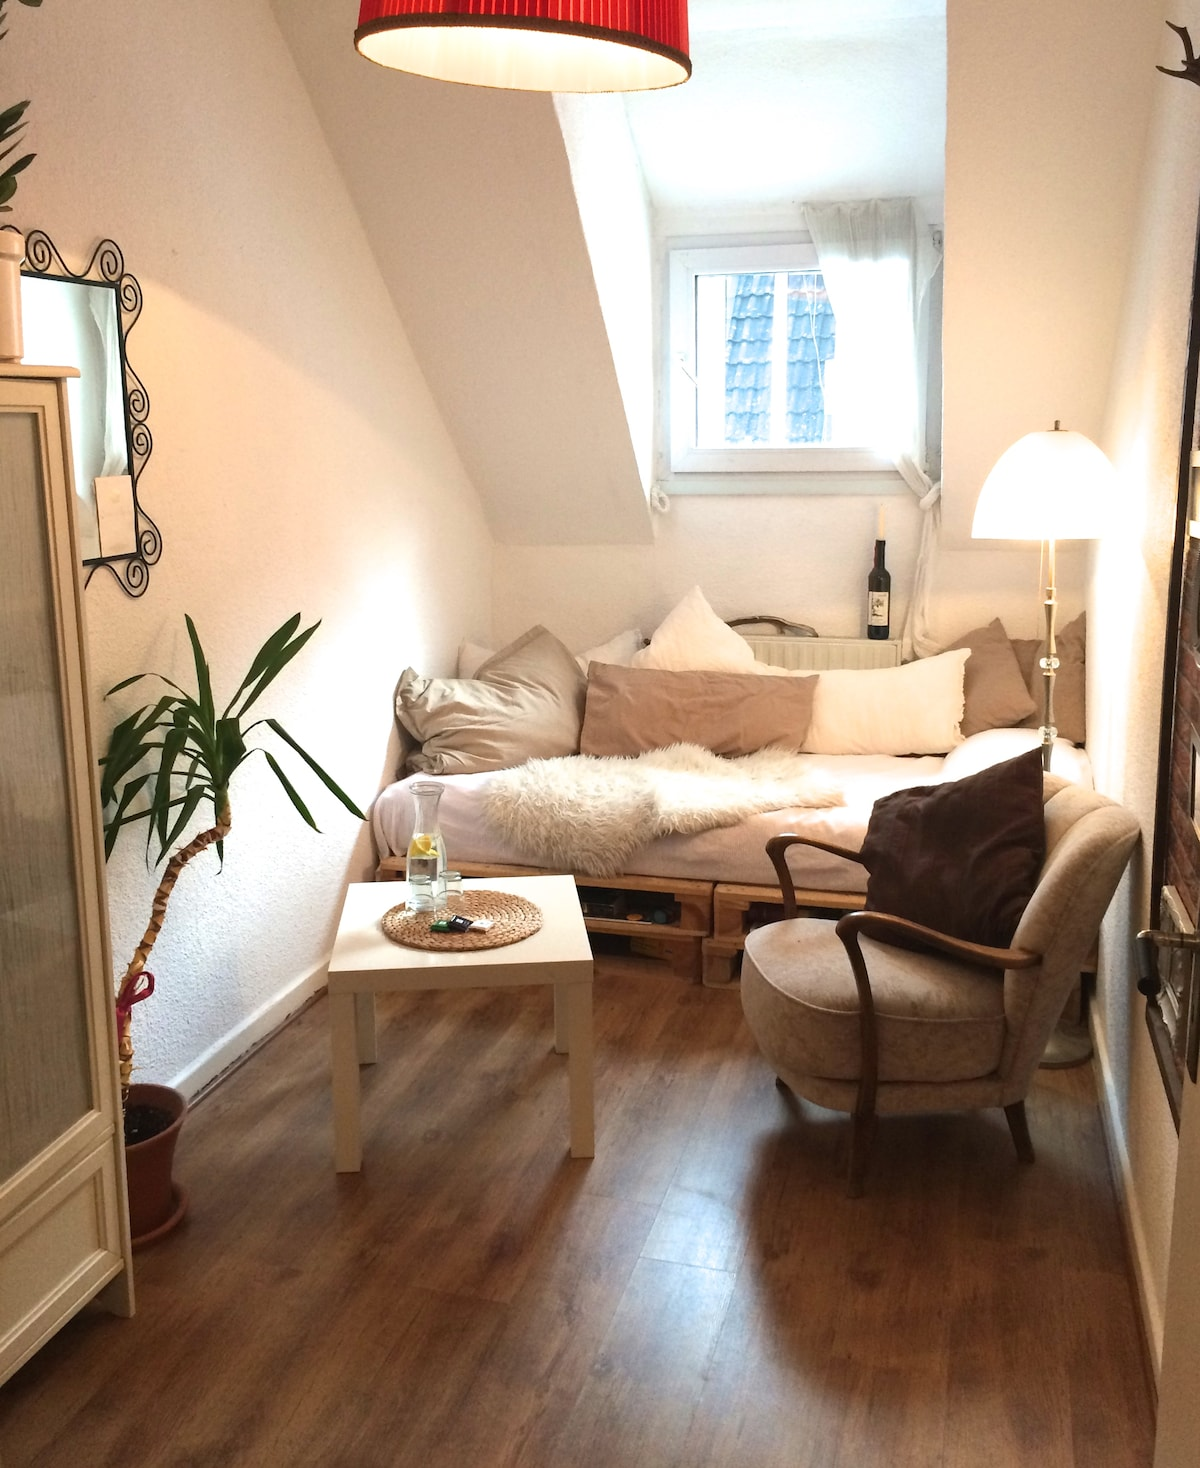 Nice room in a cozy flat :)